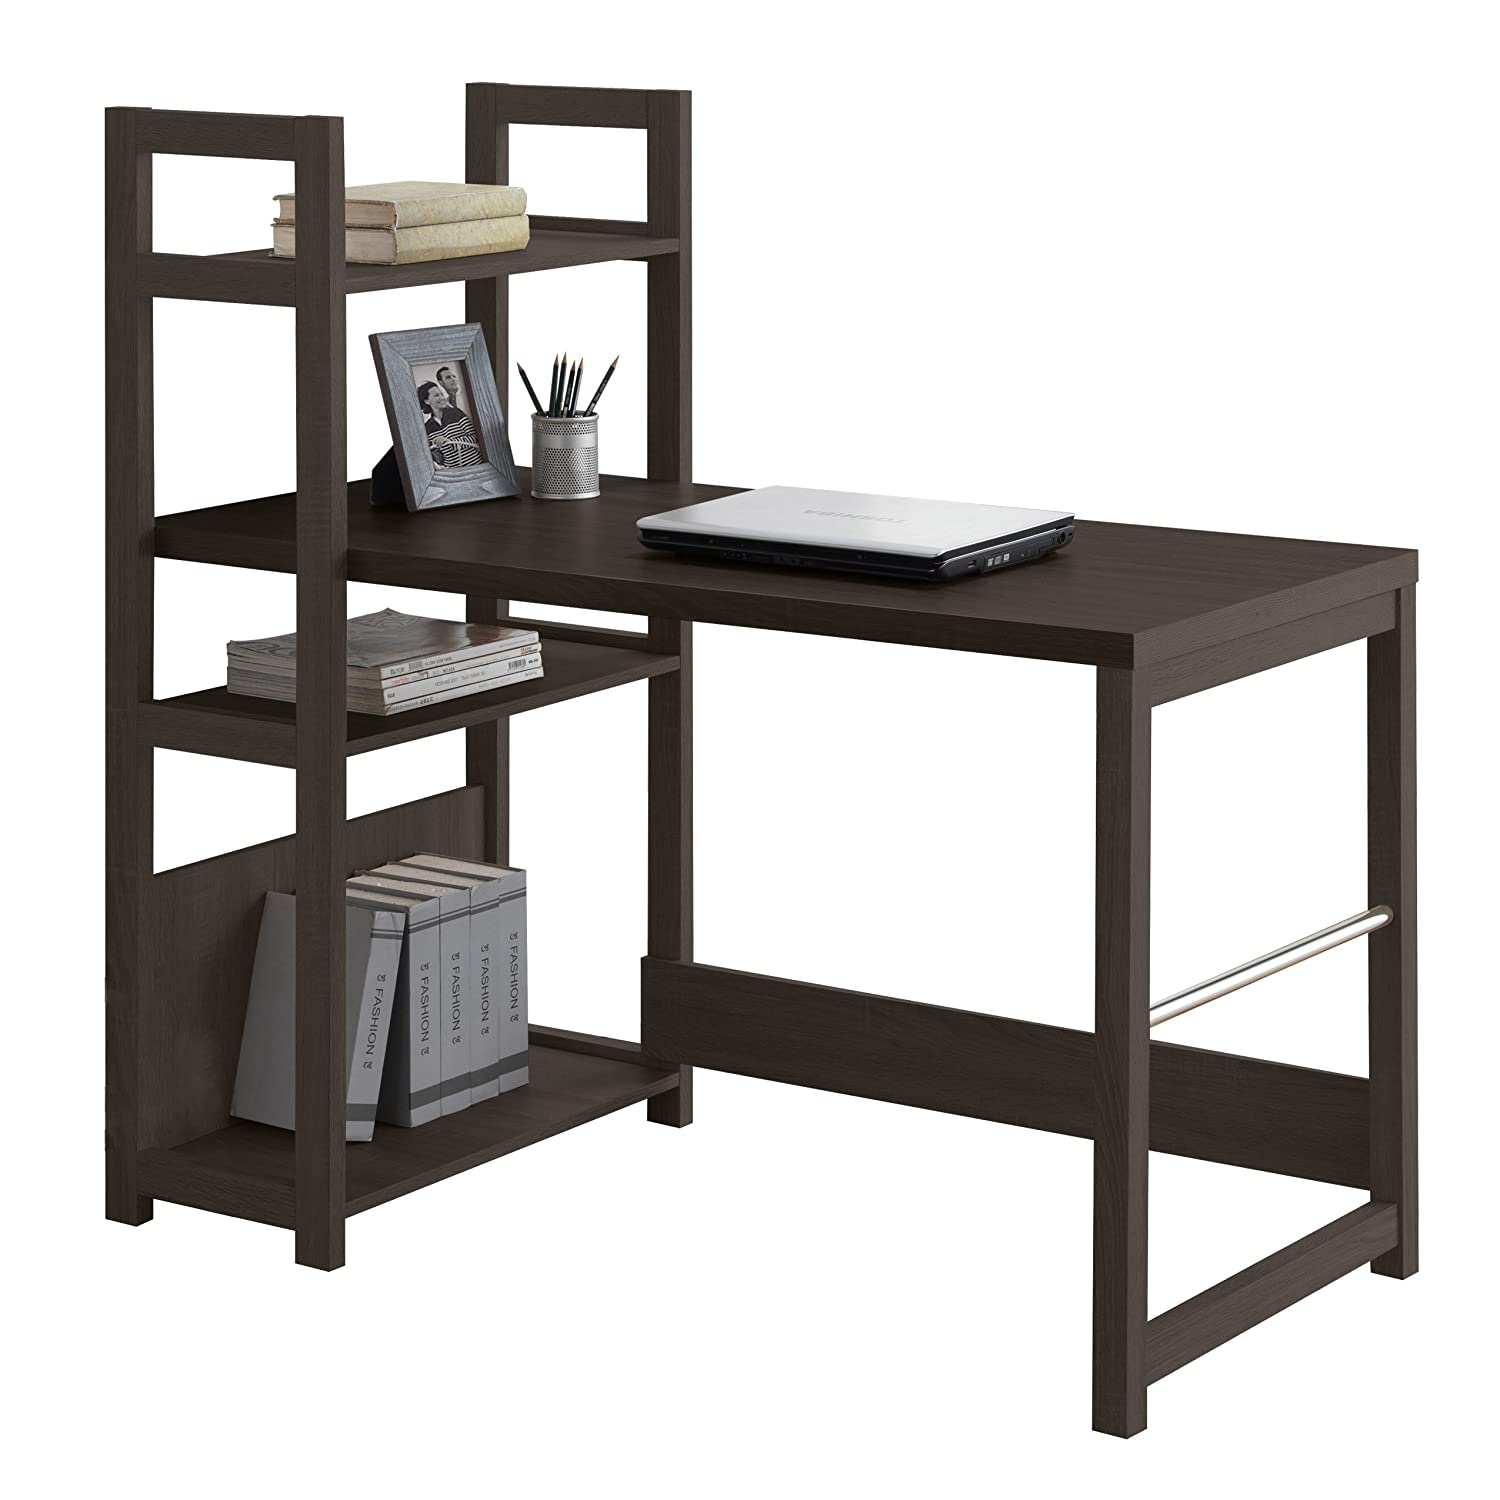 ideas simple custom college hutch desk dorm diy computer with bookshelf